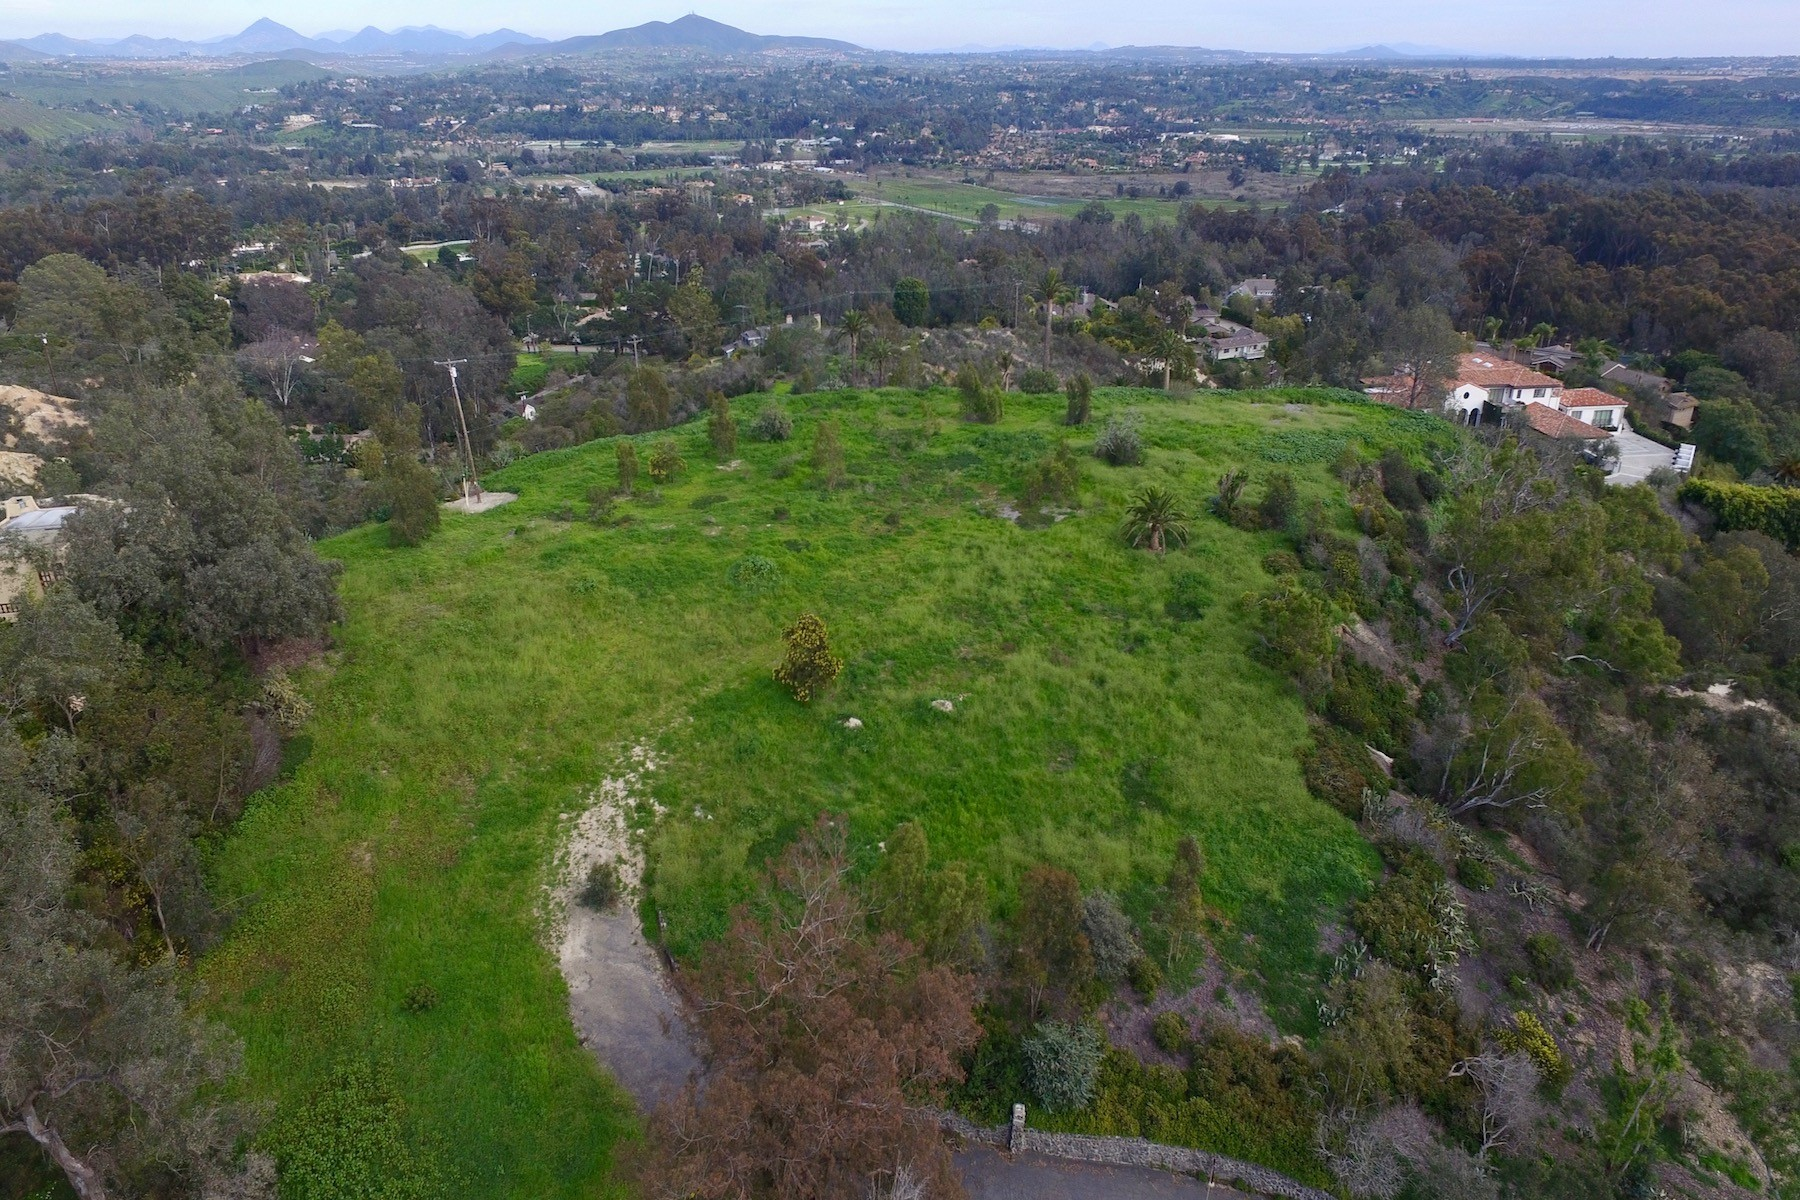 Land for Sale at 5385 Linea Del Cielo Rancho Santa Fe, California 92067 United States